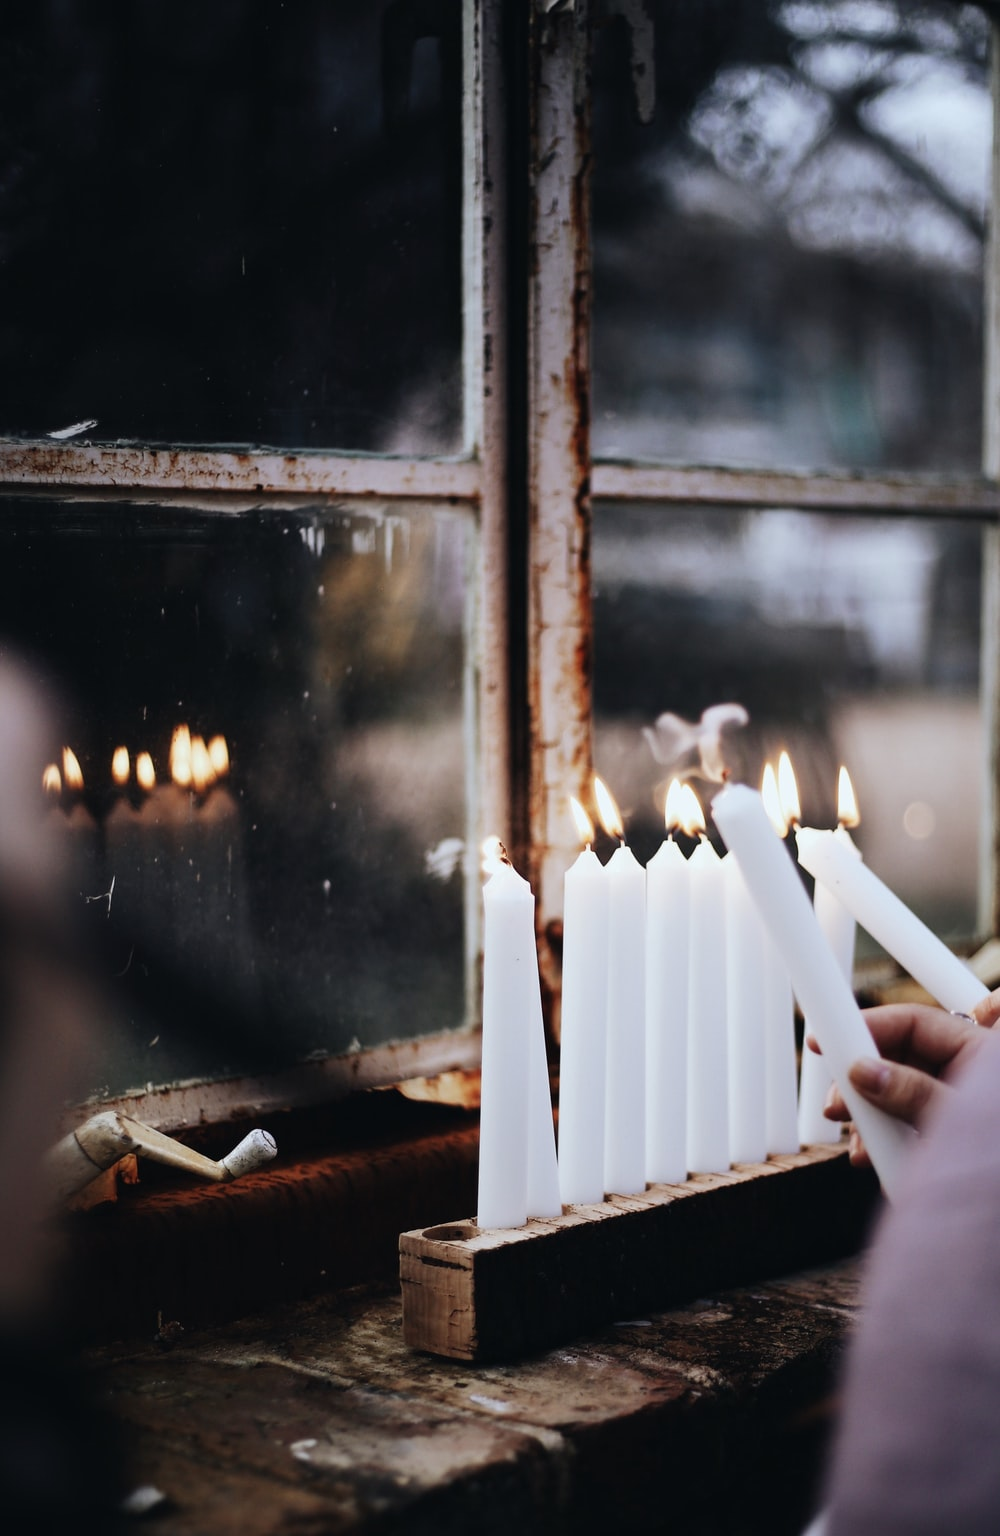 person lighting white candlesticks in a rack near glass windowpane